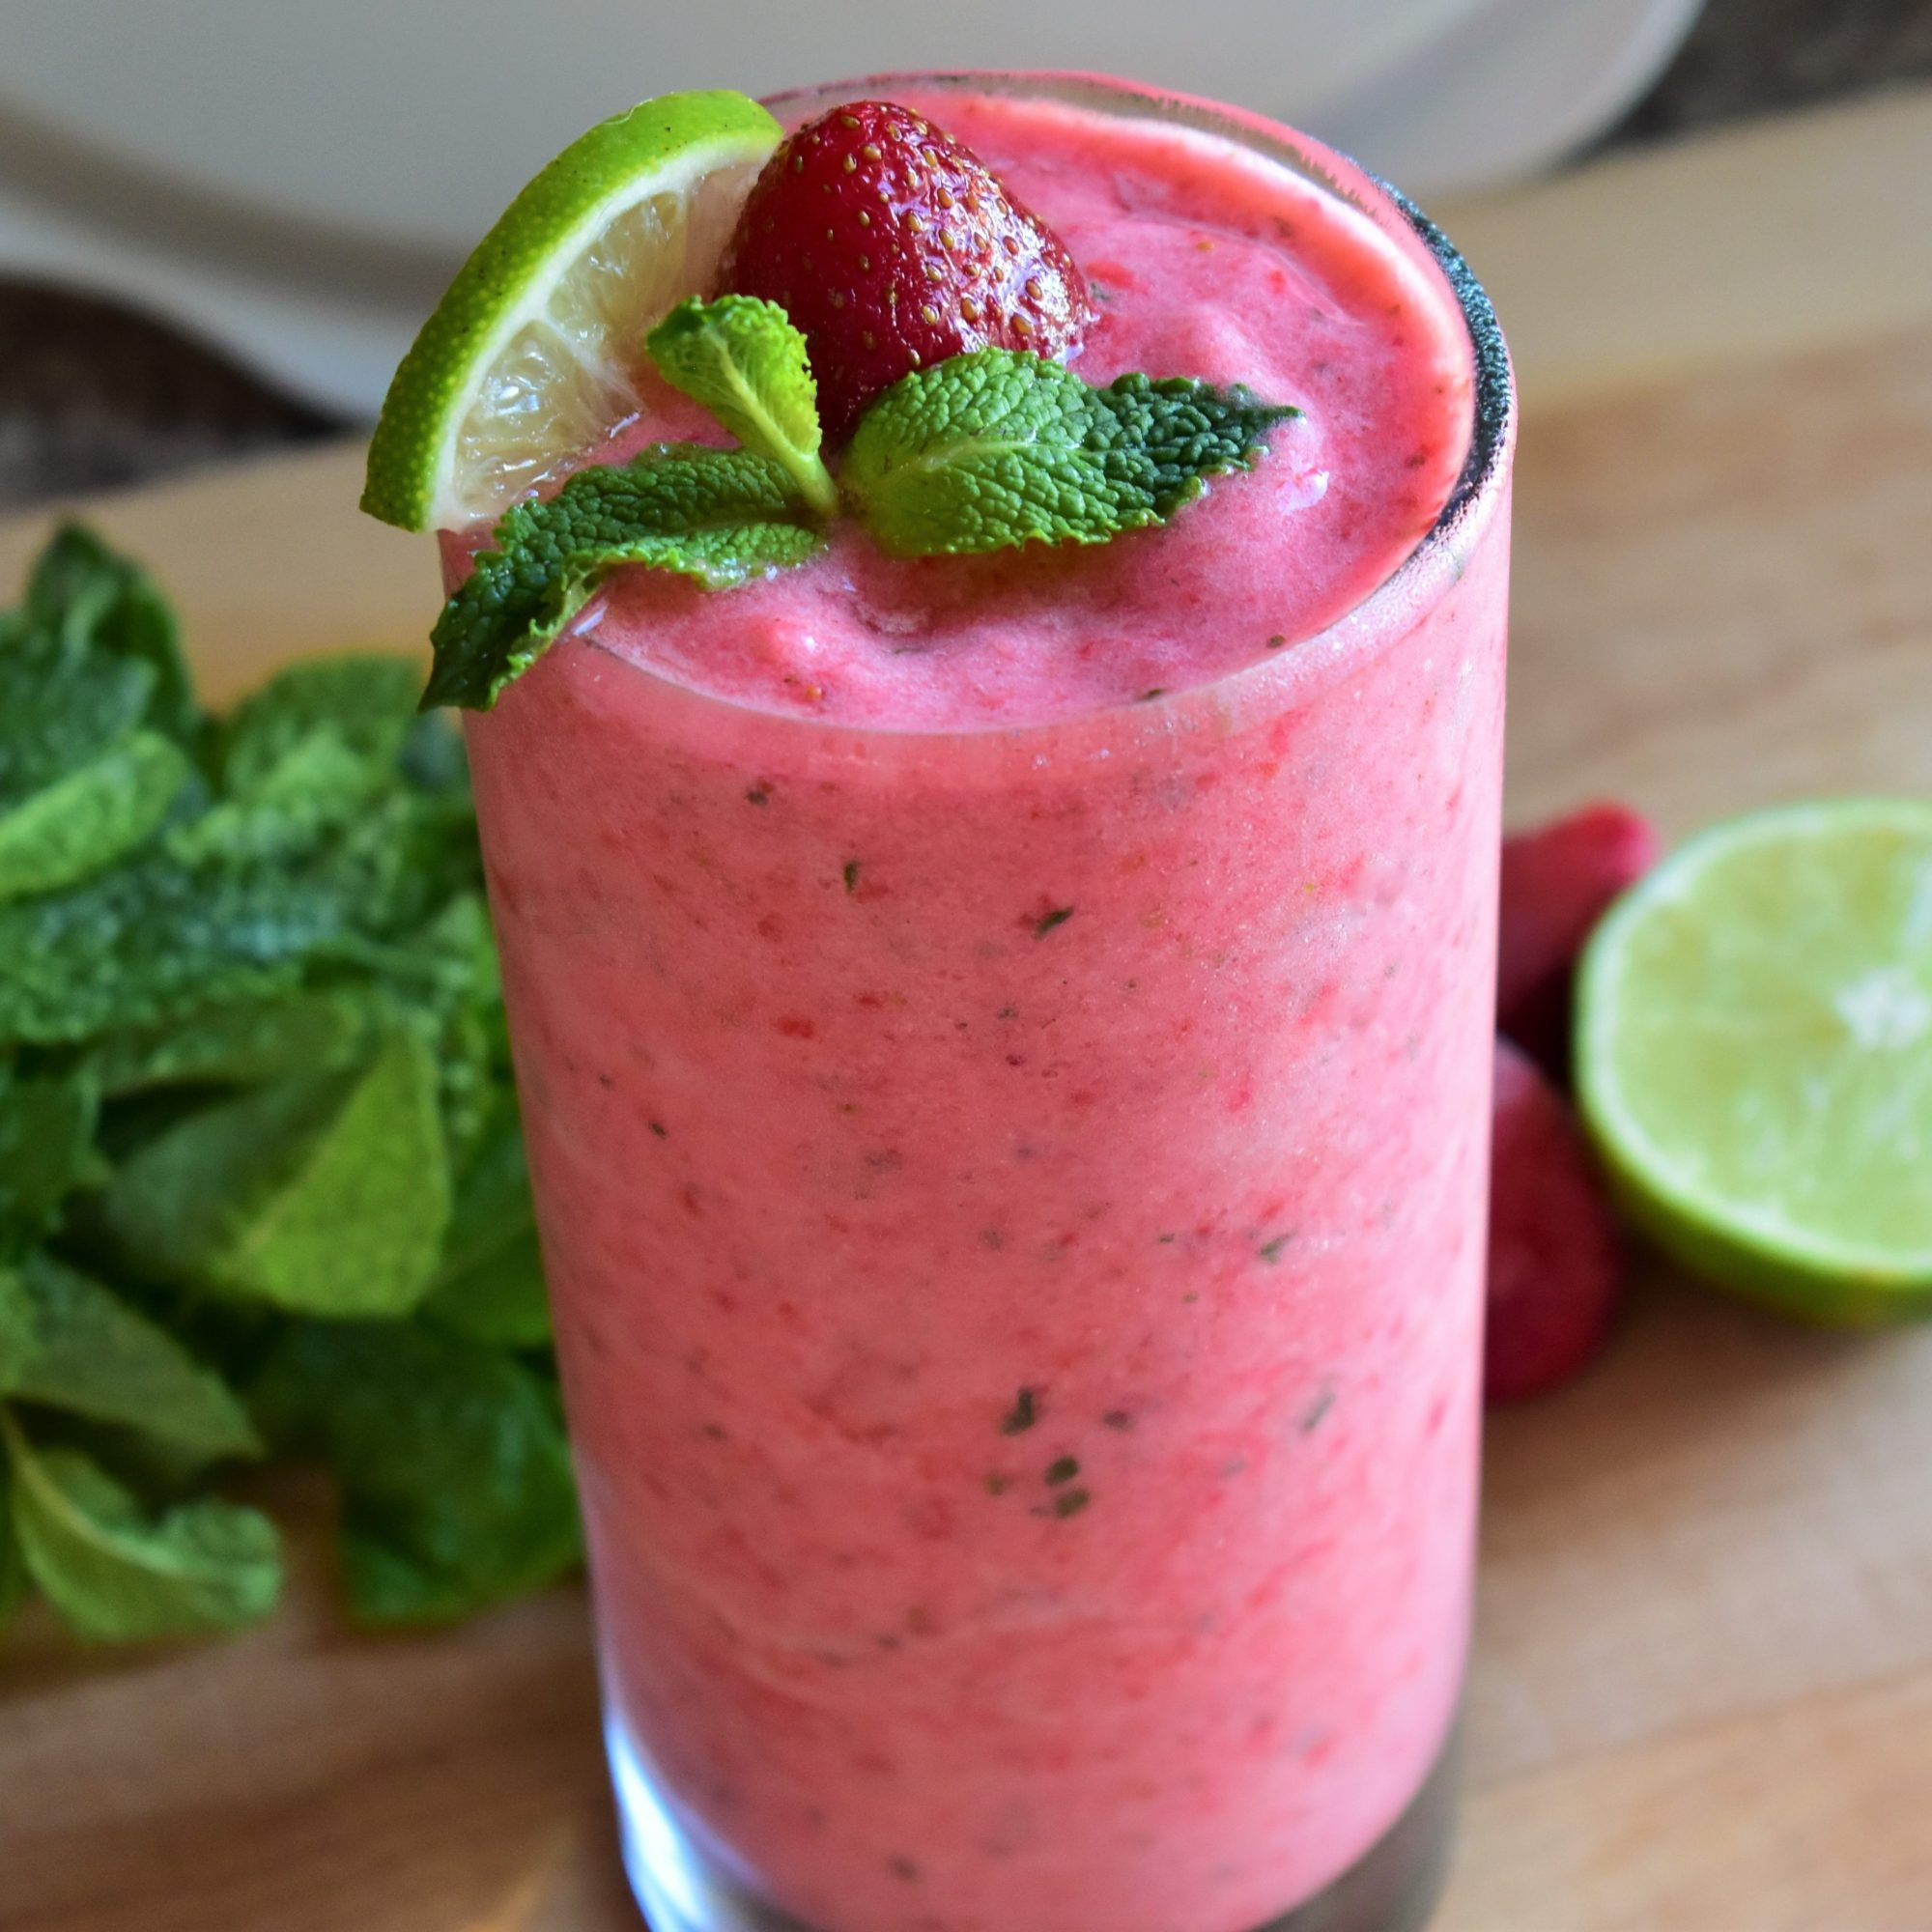 Mint and Fruit Smoothie